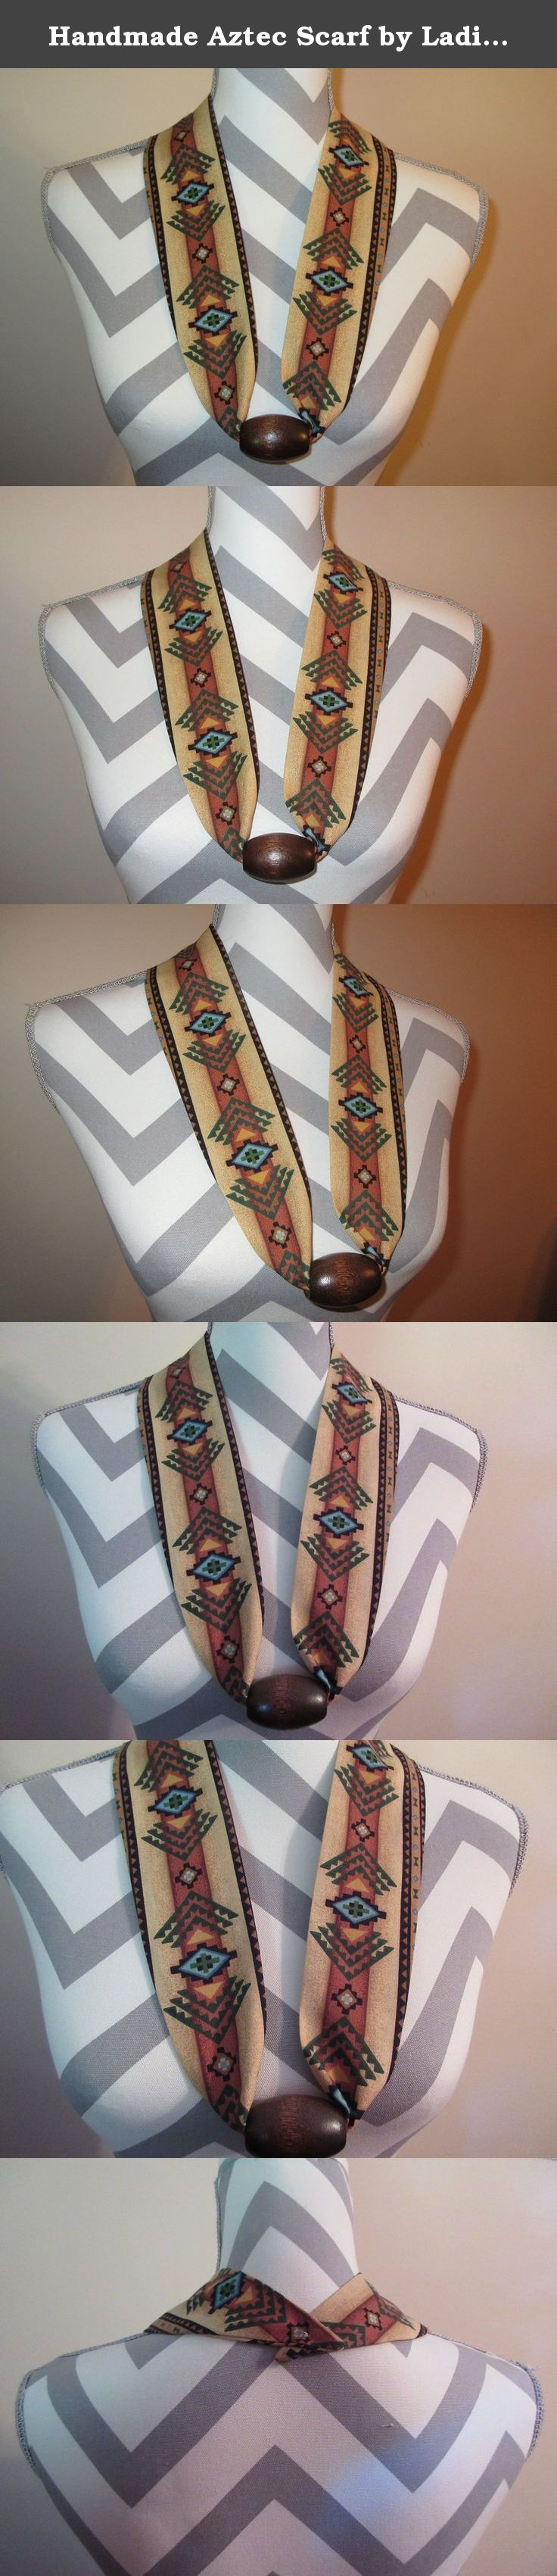 Handmade Aztec Scarf by Ladies Fashion Collars Unique No Tie Southwestern Print Scarf with Wood Brown Bead One Size Fits All Cotton Print Gift for Her with Gift Bag and Ribbon. Handmade Ladies Fashion Collars Fabric Scarf Necklace Aztec Southwestern Cotton Print with a Wood Brown Bead. One Size Fits All; Simply Slip it Over Your Head; Lightweight Only 1 Ounce, Bead holds decorative fabric scarf in place, complementing any neckline. No Tie; No Fuss; No Clasp; Fun and Easy to Wear; Infinity...